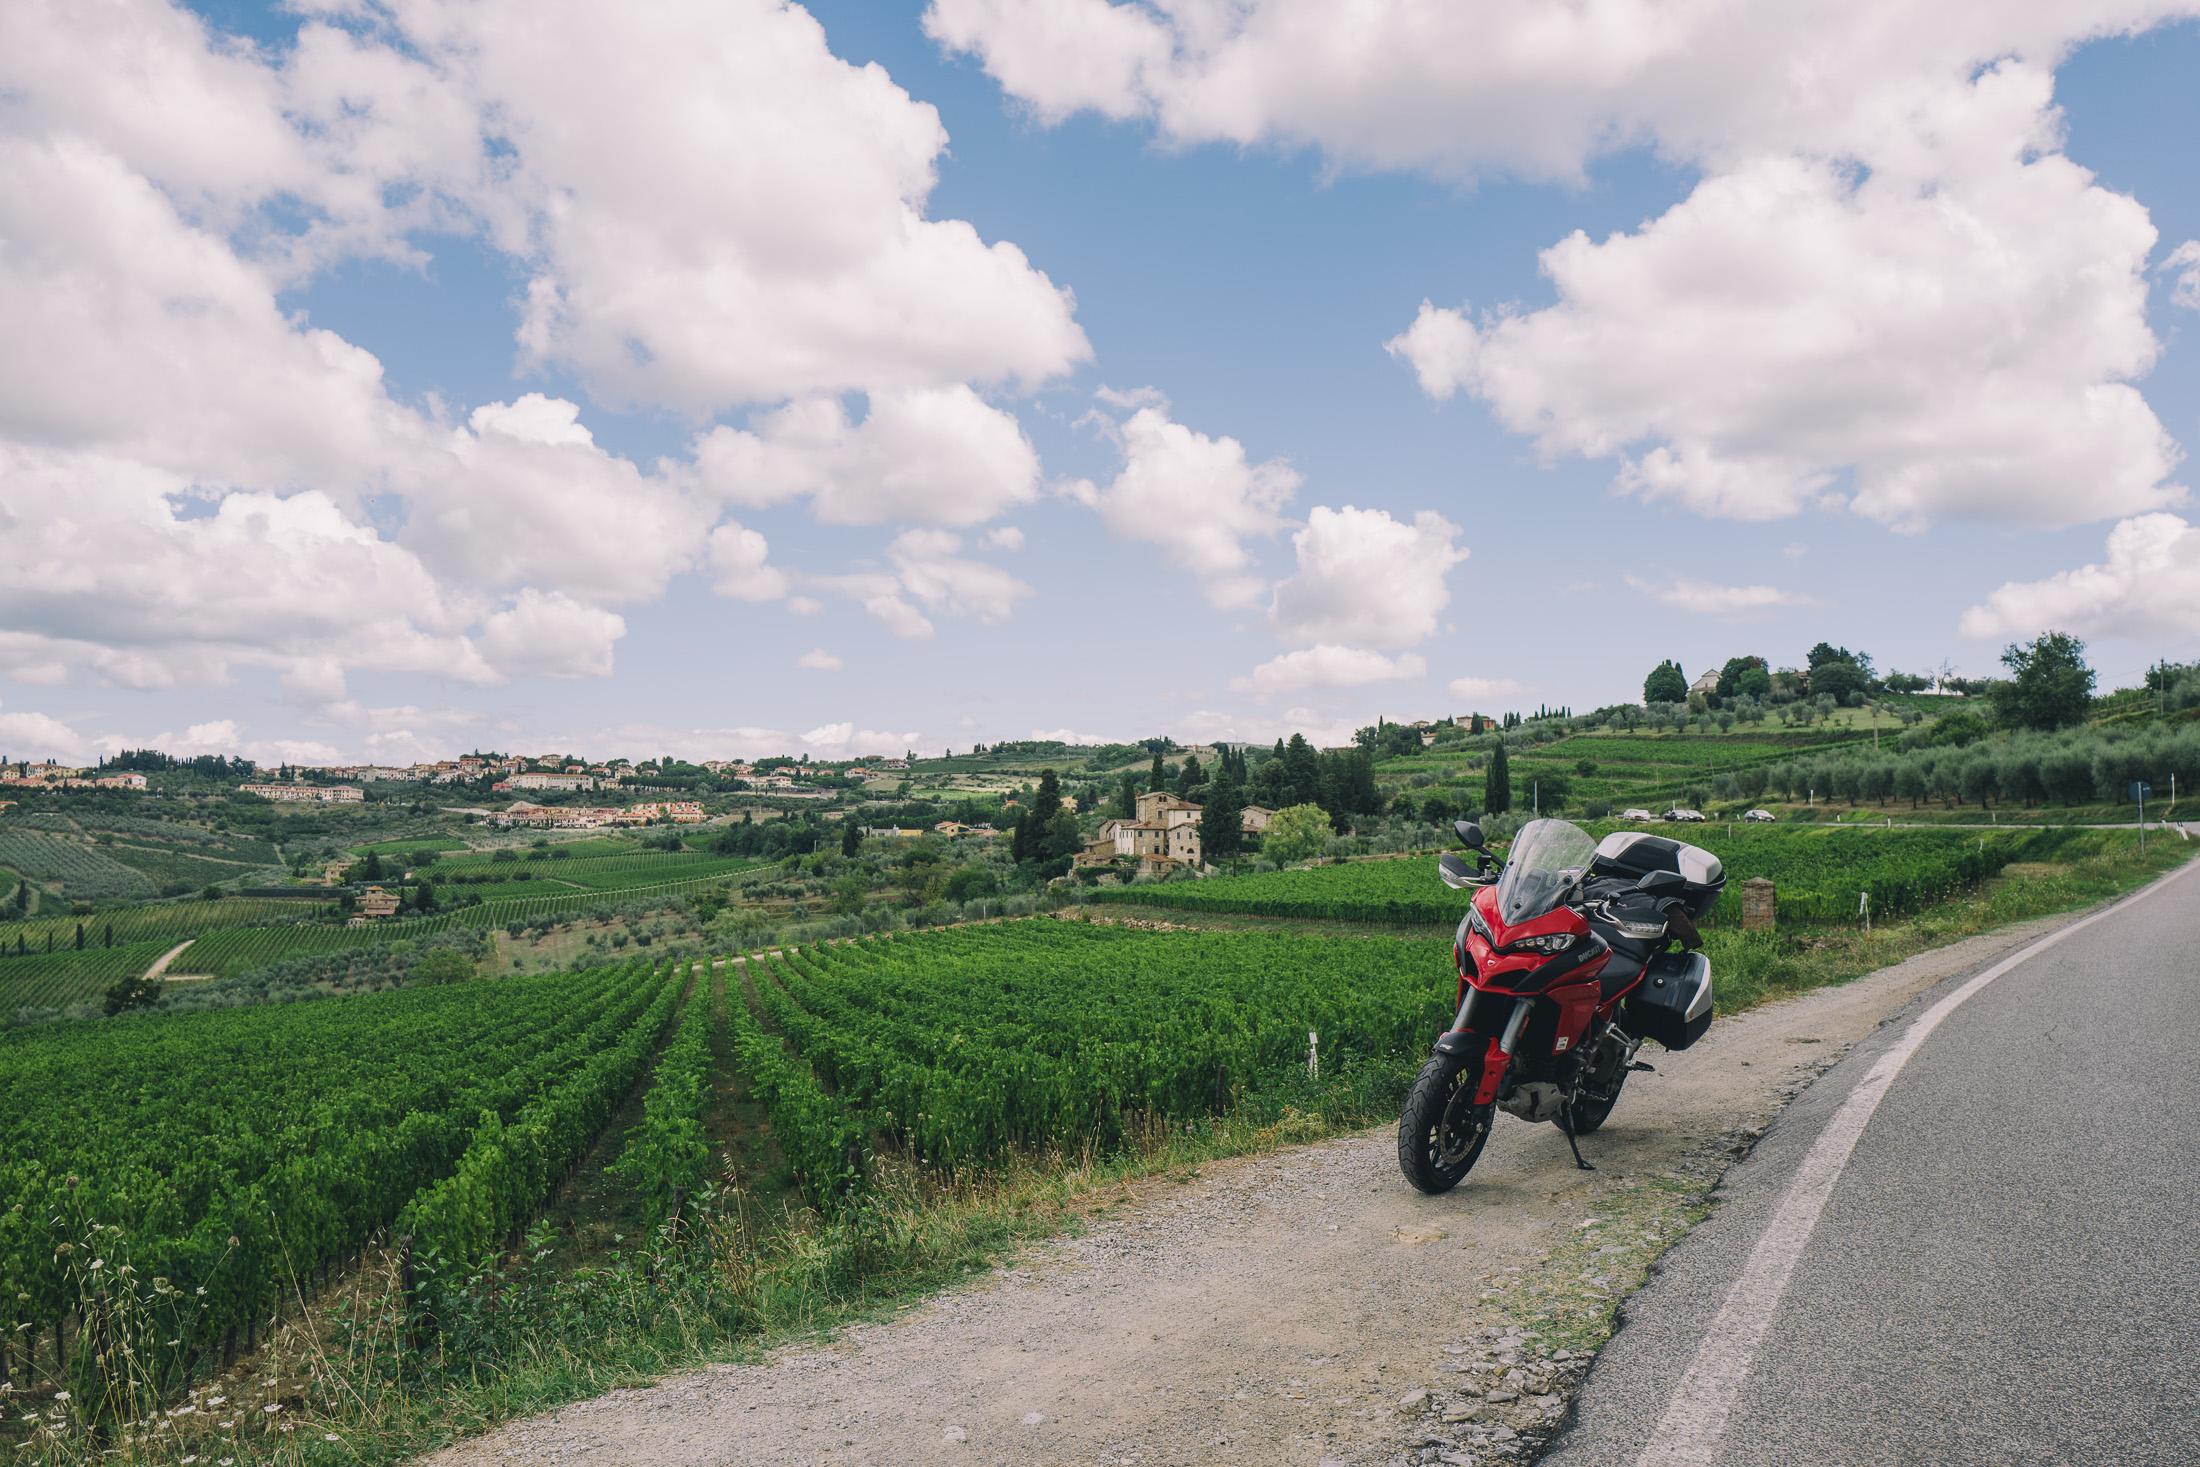 Ducati Mulitstrada 1200s 2015 review (13 of 29)